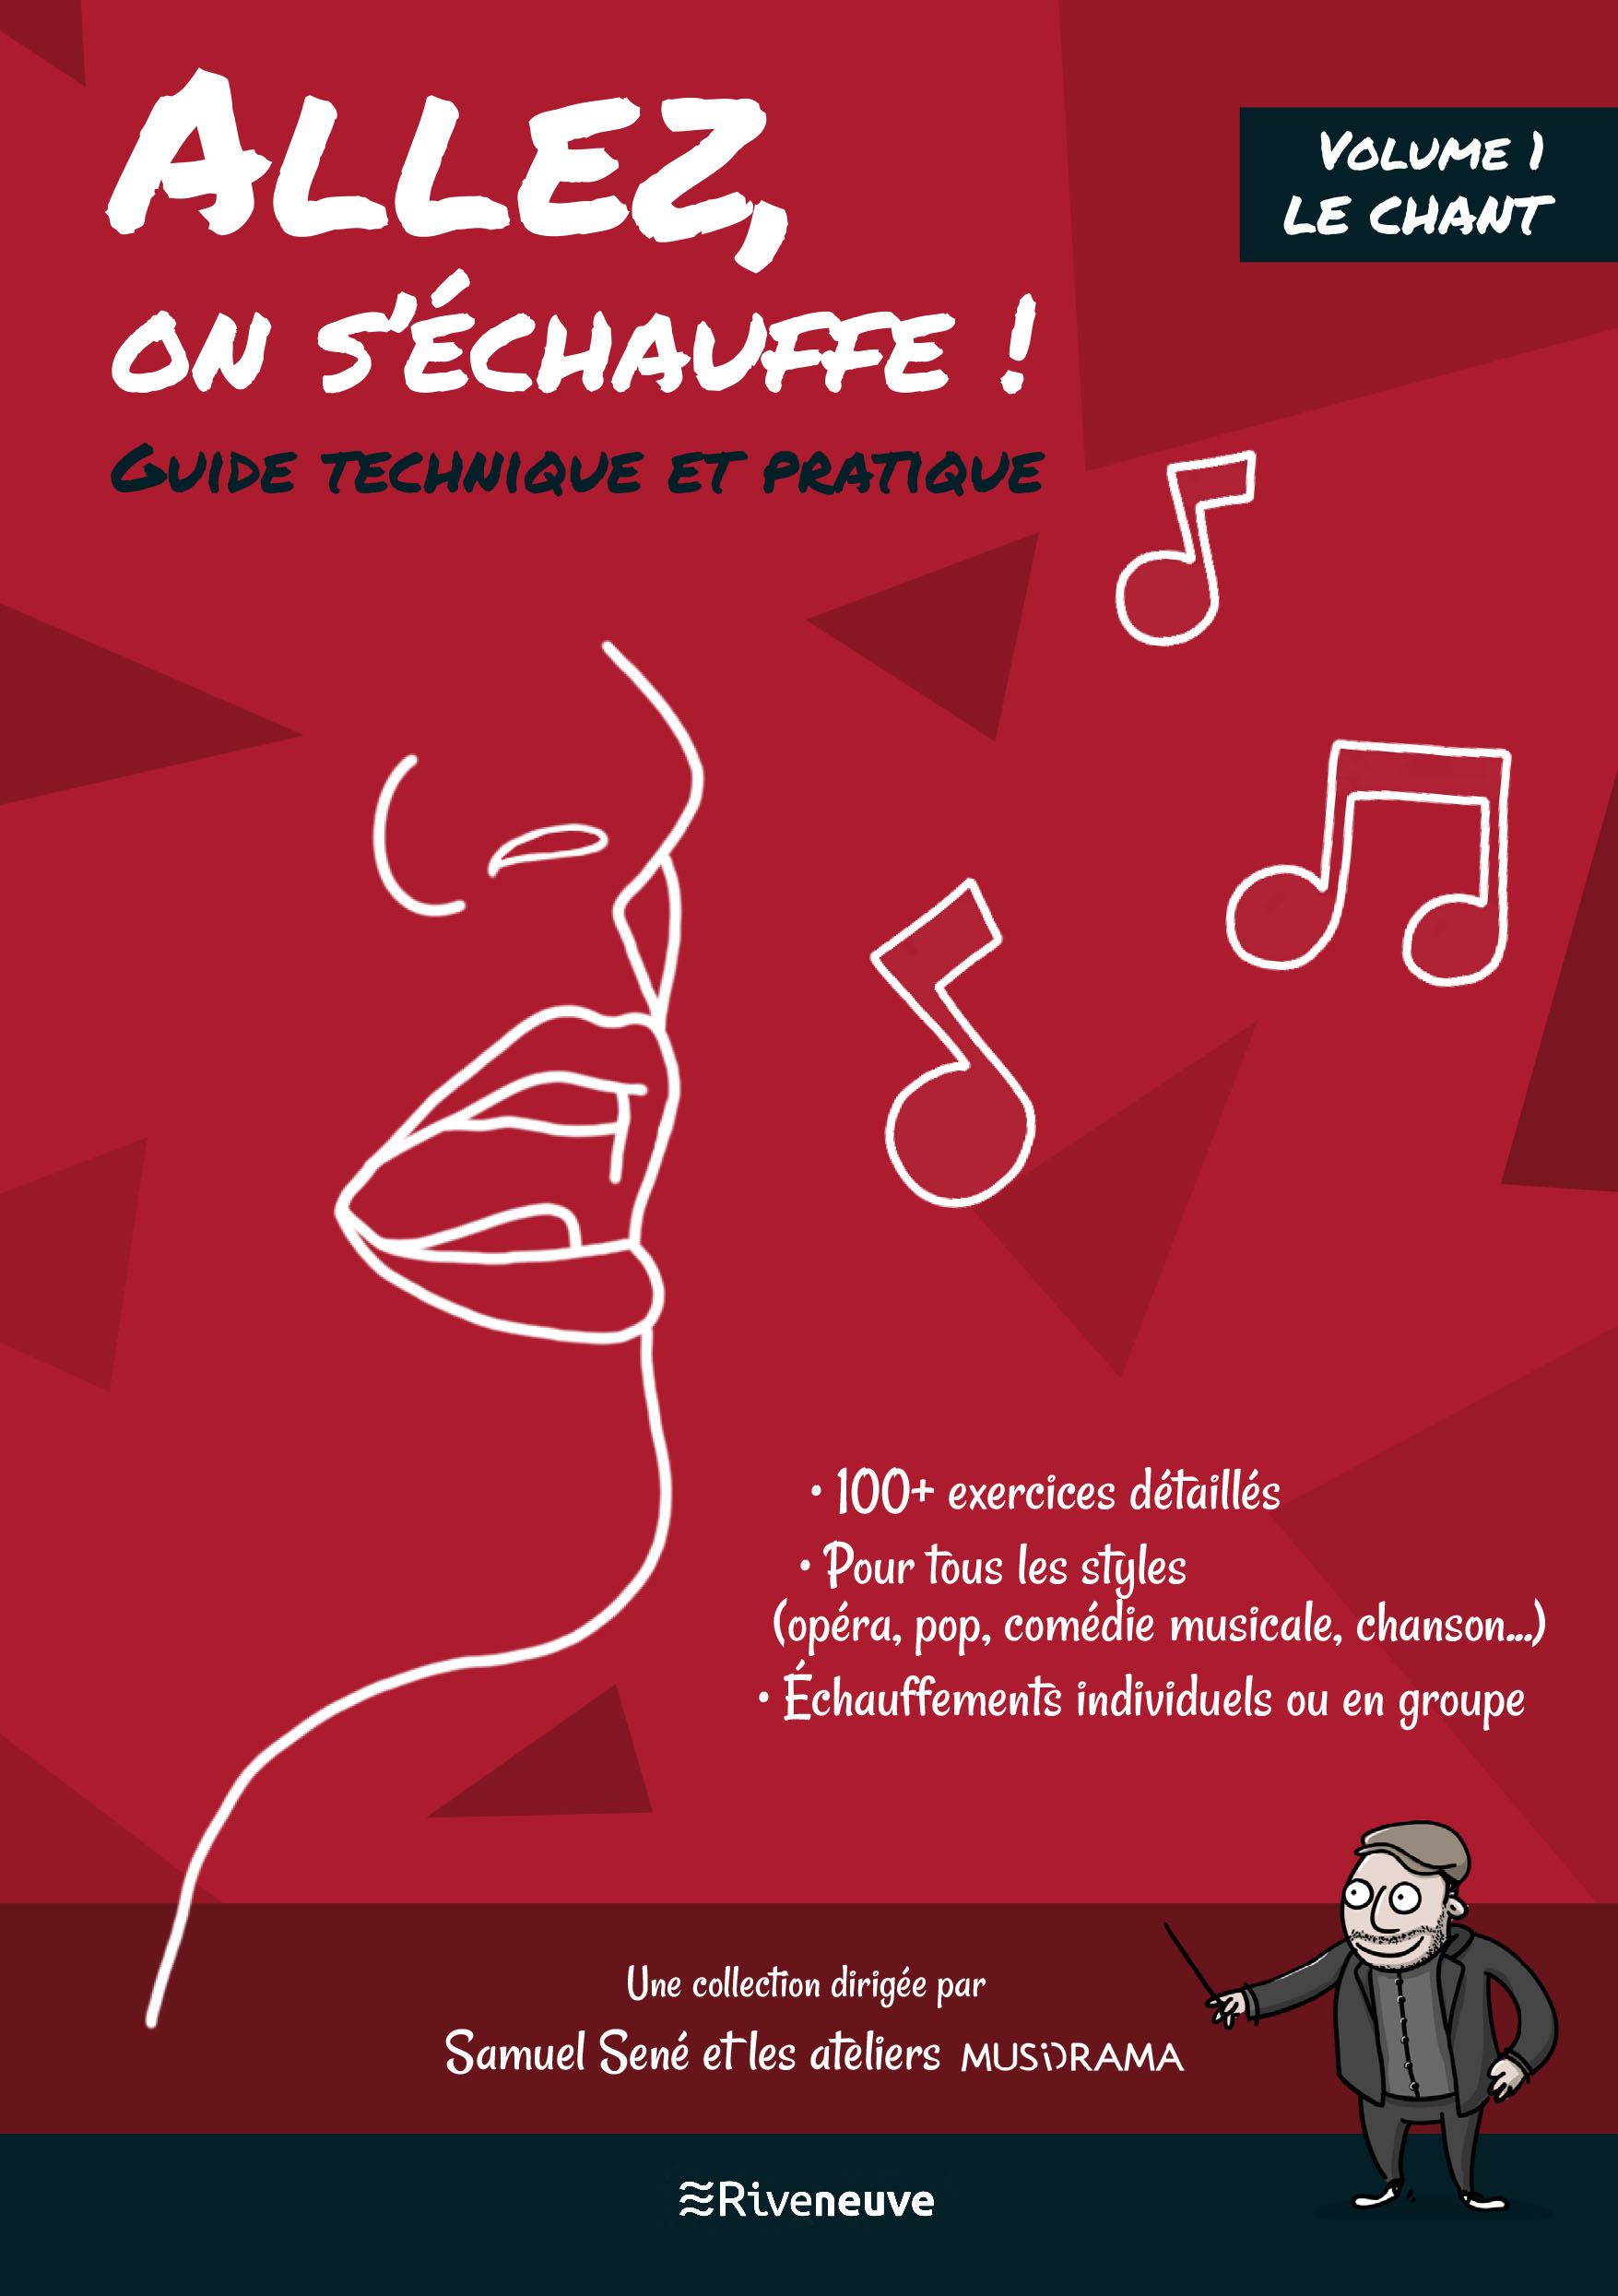 Allez, on s'échauffe ! Guide technique et pratique. Volume I Le Chant